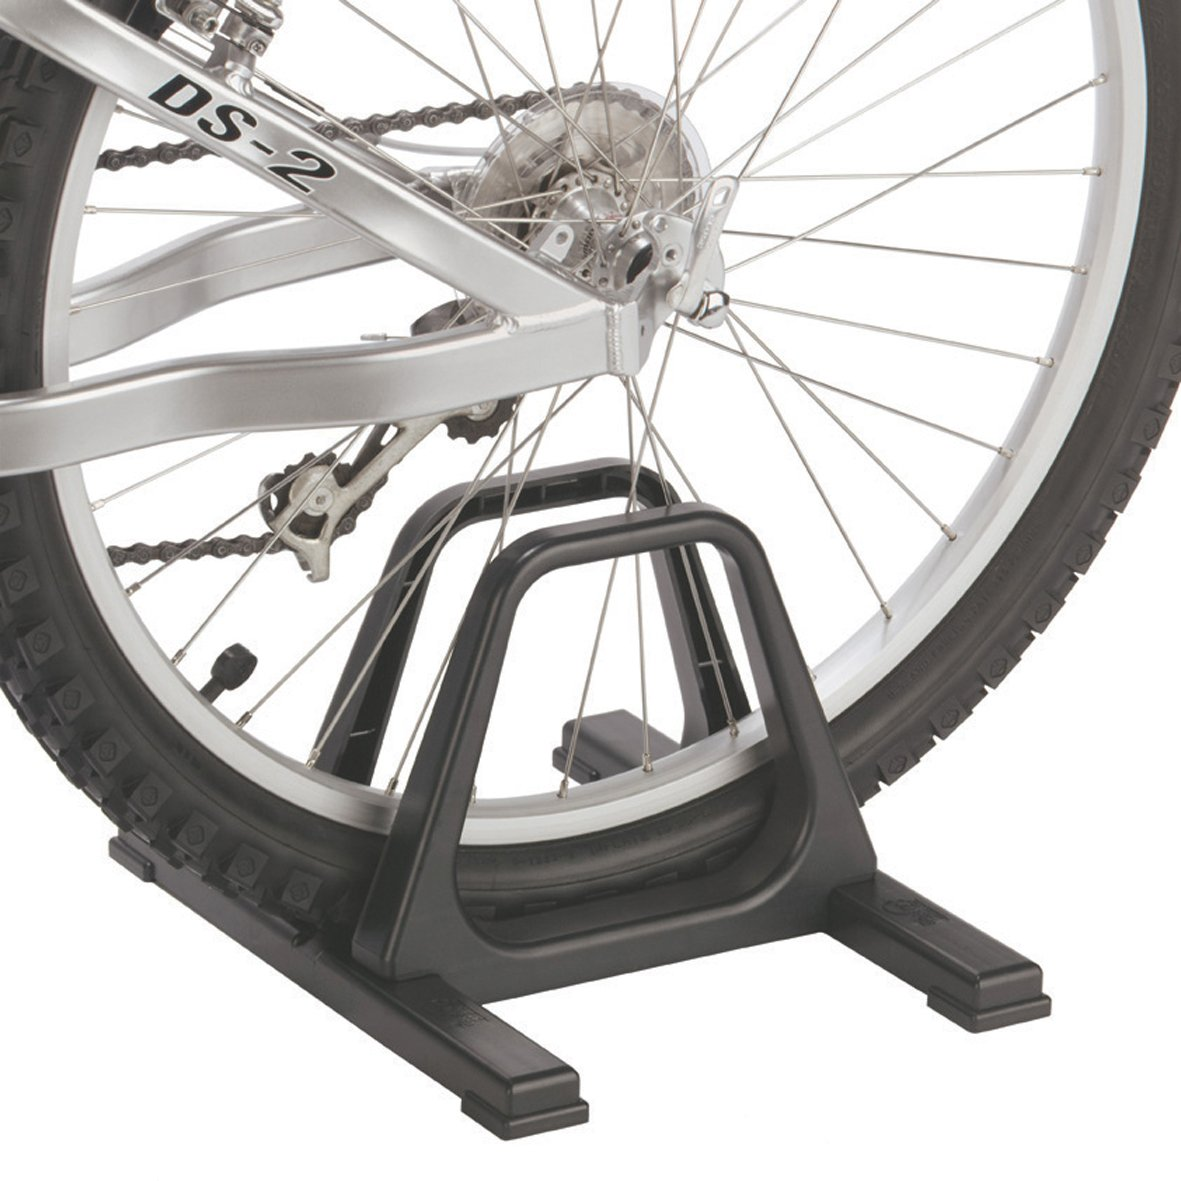 Amazon.com: Gearup The Grand Stand Single Bike Floor Stand, Black: Sports U0026  Outdoors